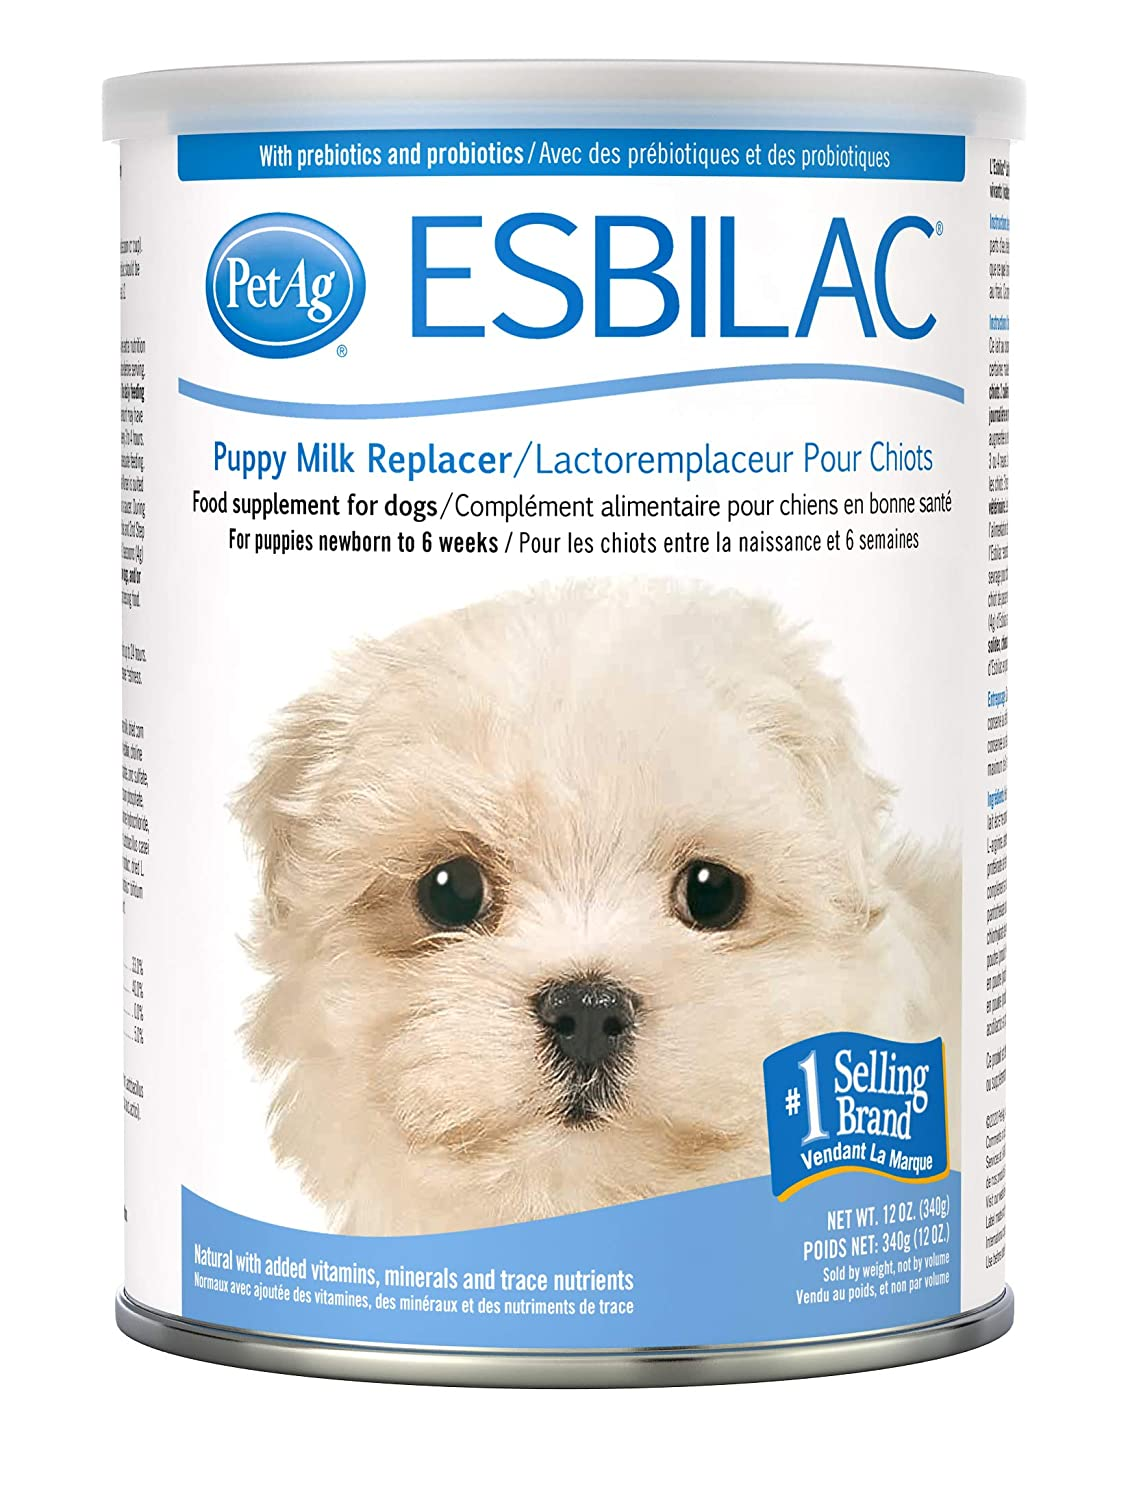 Buy Pet Ag Esbilac Powder Milk Replacer For Puppies Dogs 12oz Online At Low Prices In India Amazon In